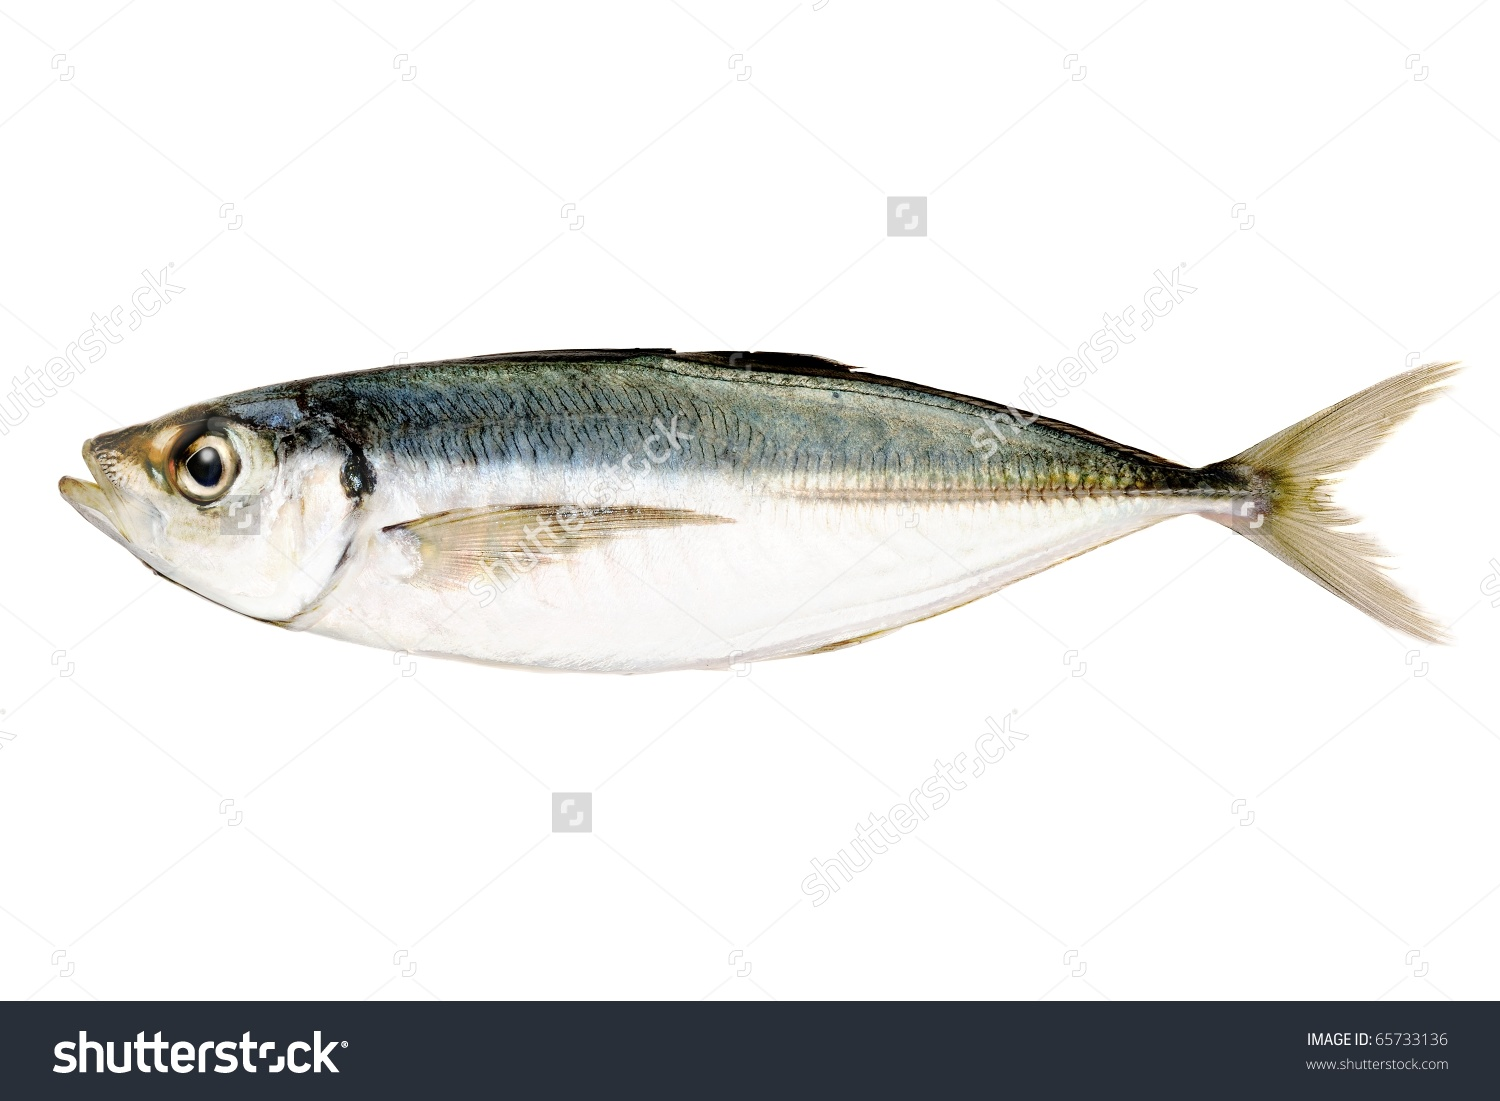 Horse Mackerel Japanese Jack Mackerel Stock Photo 65733136.